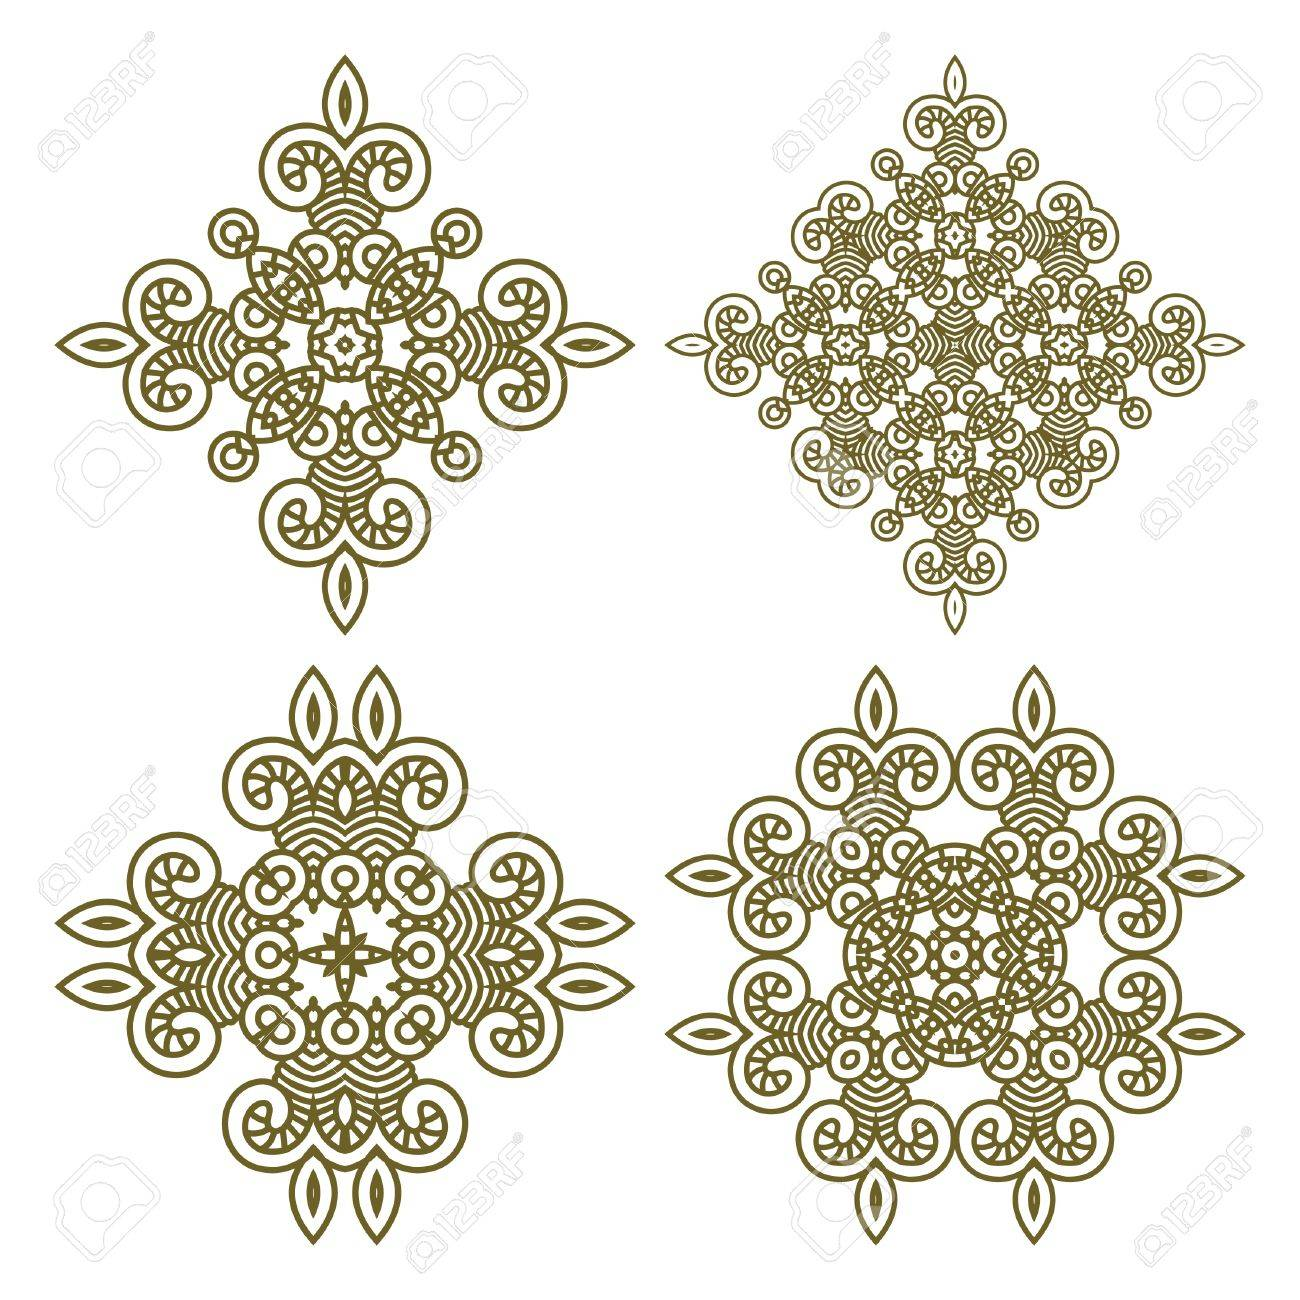 Seamless wallpaper with aztec ornament in gold colors, design element Stock Vector - 13160236